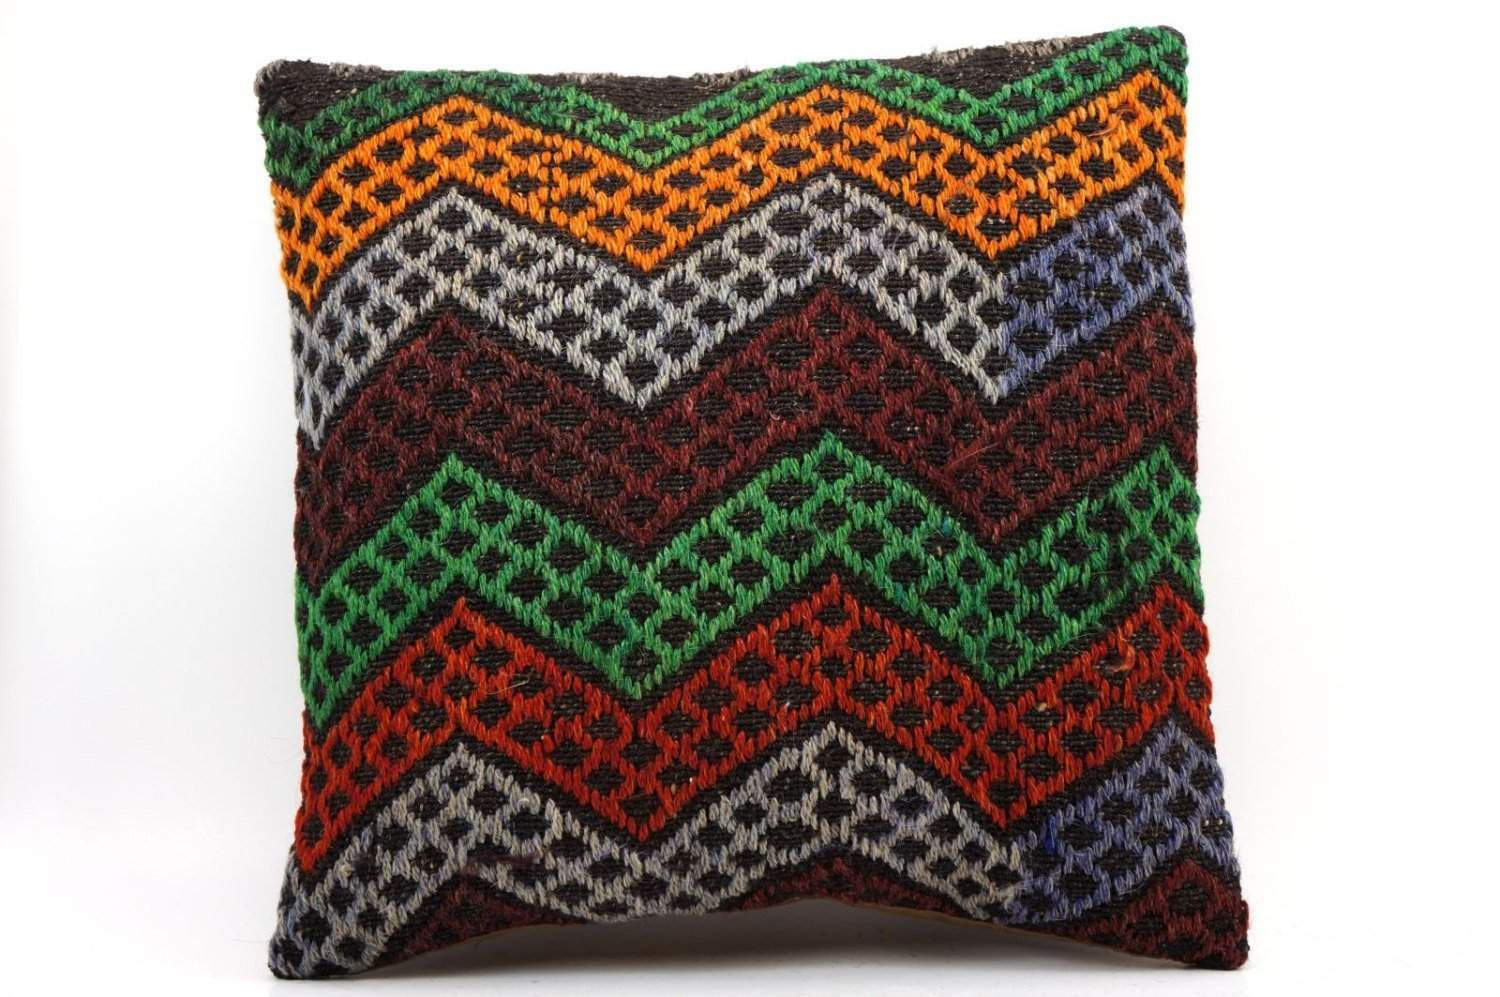 16x16 Vintage Hand Woven Kilim Pillow 496,orange,green,blue,black,red,claret red,chevron